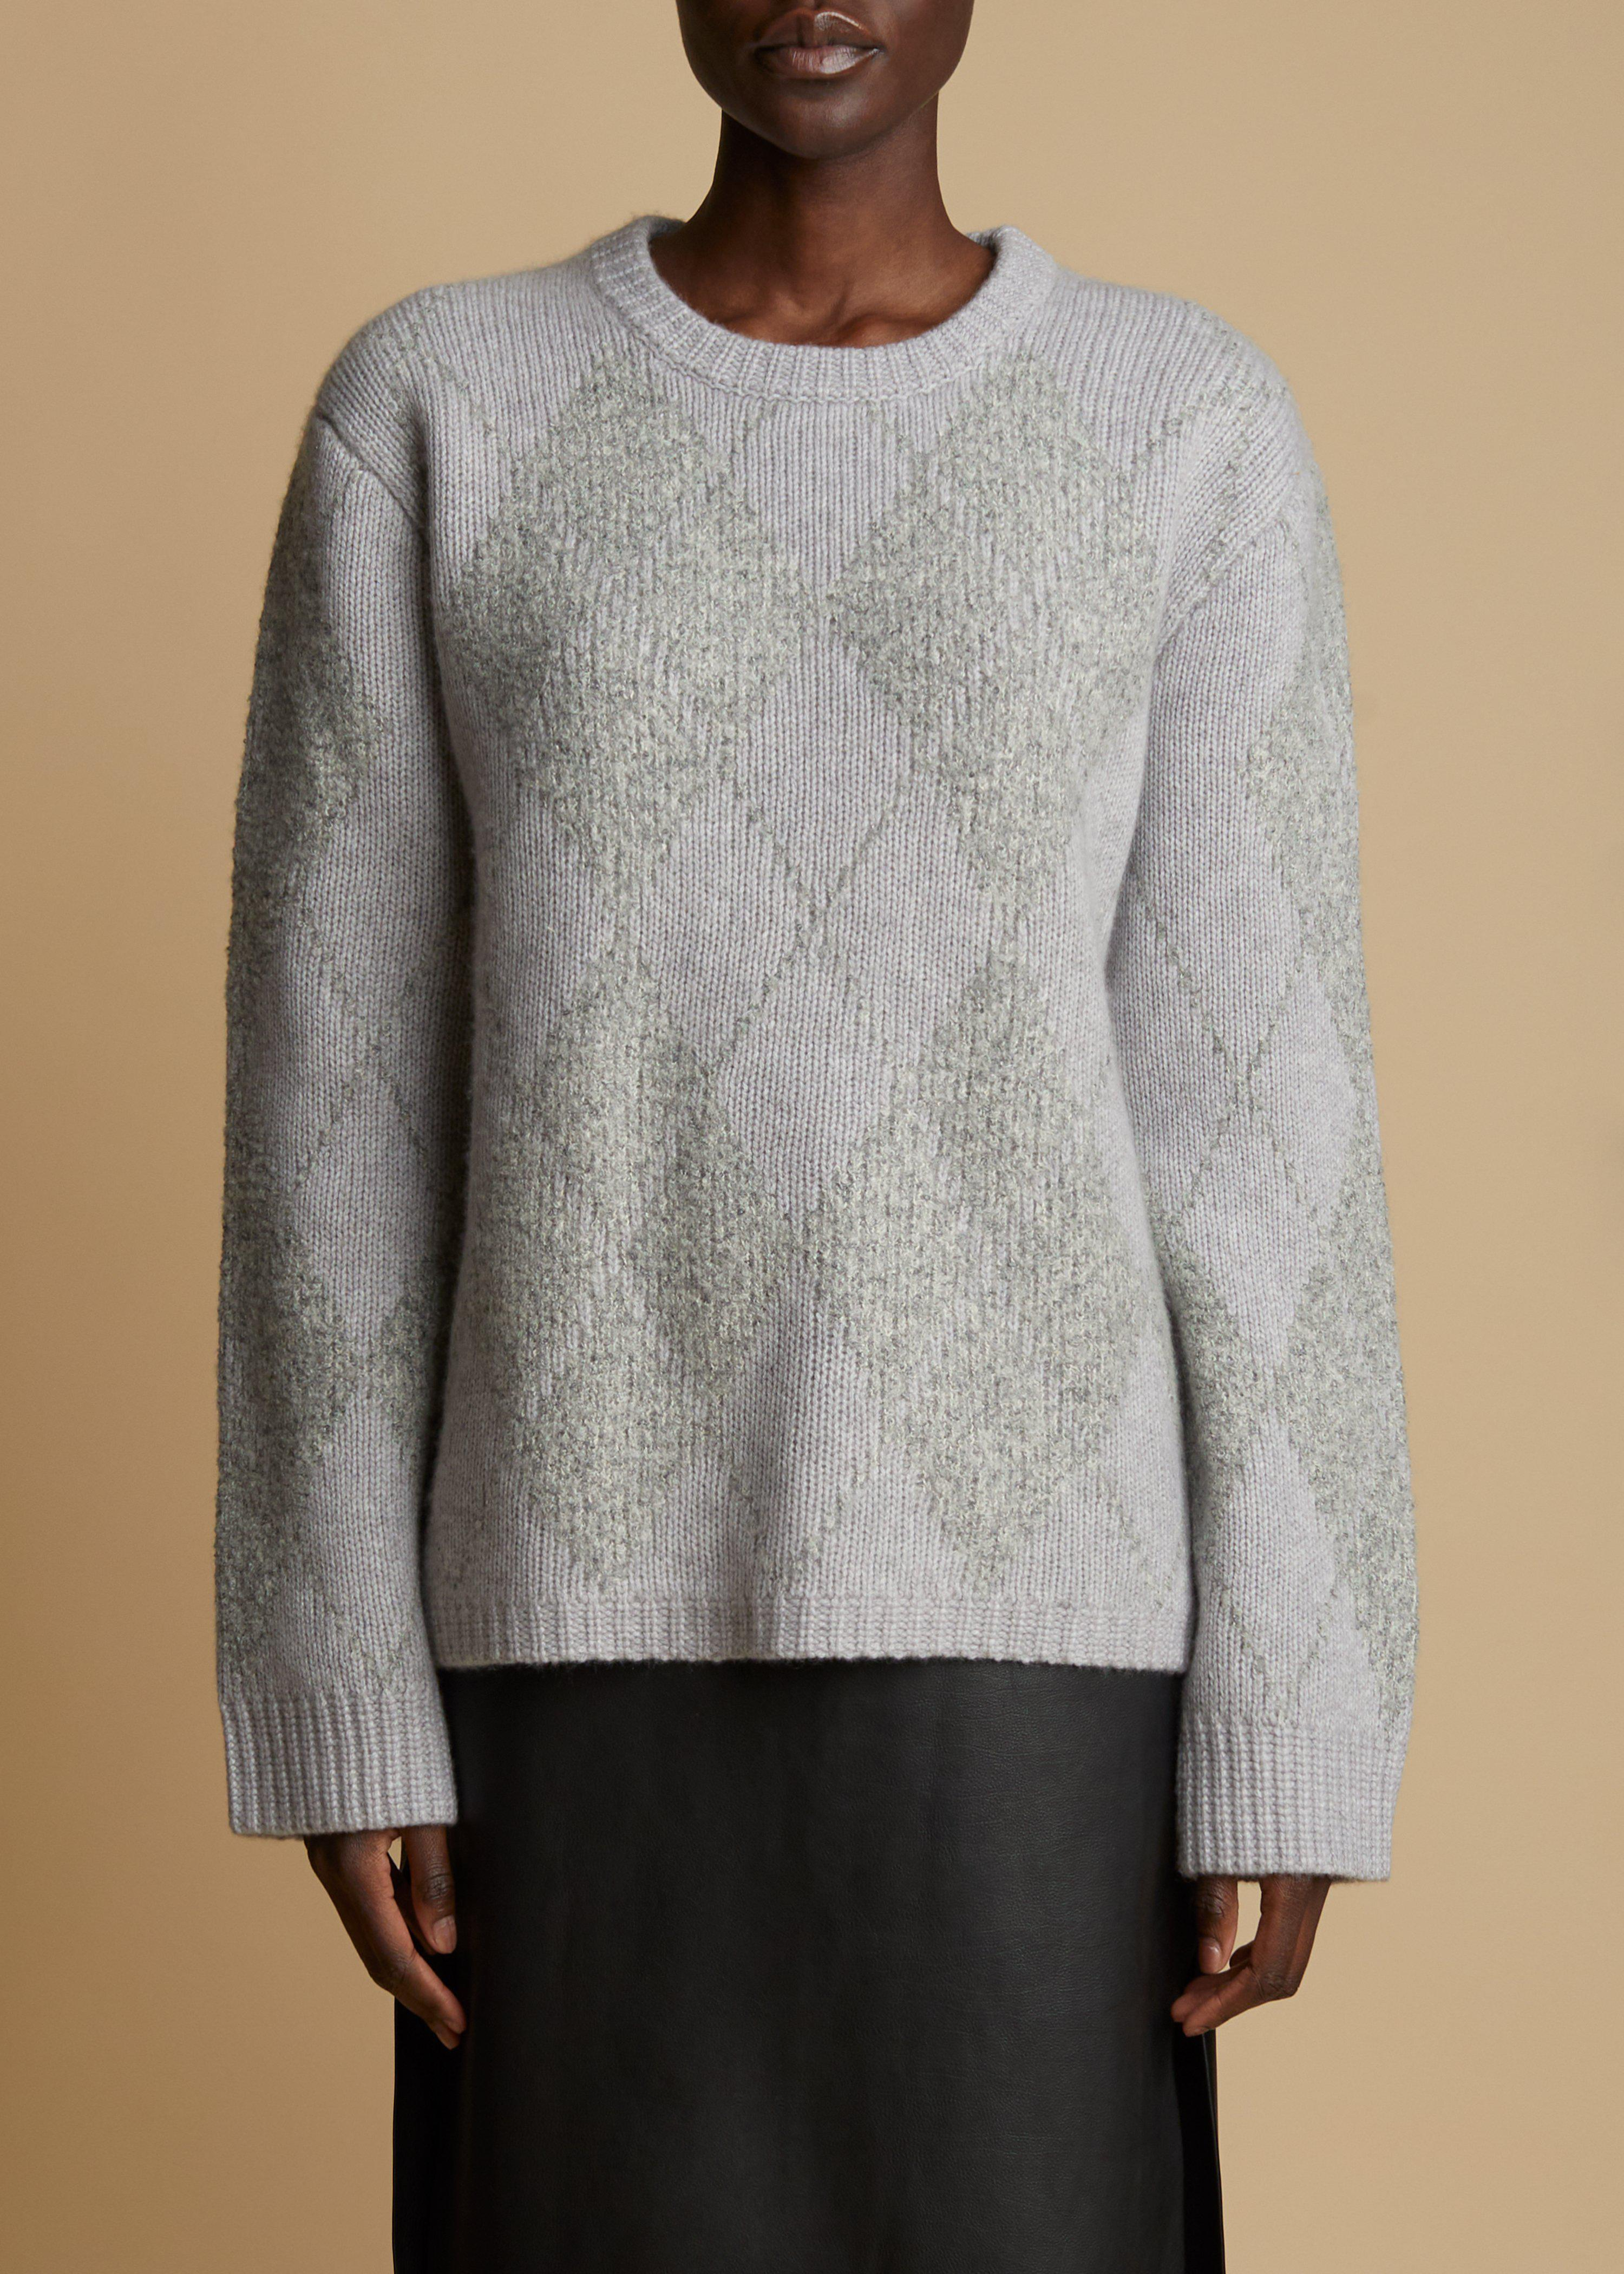 The Siro Sweater in Grey and Charcoal